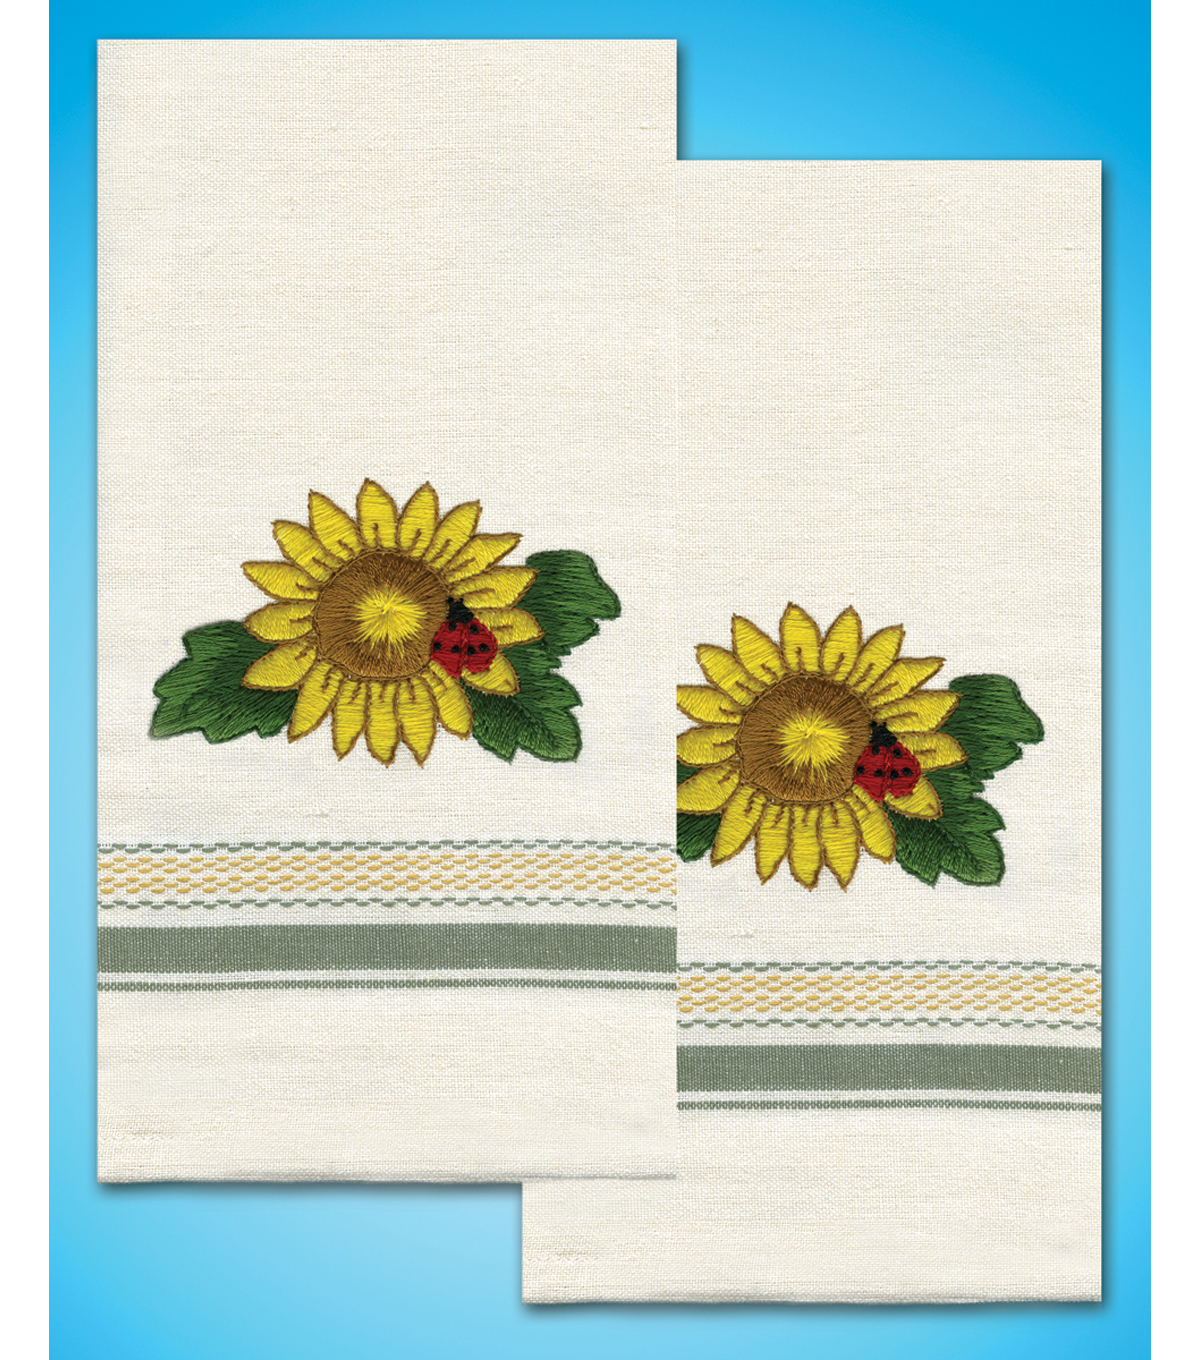 Stamped Kitchen Towels For Embroidery 20\u0022X28\u0022 2/Pkg- Sunflower